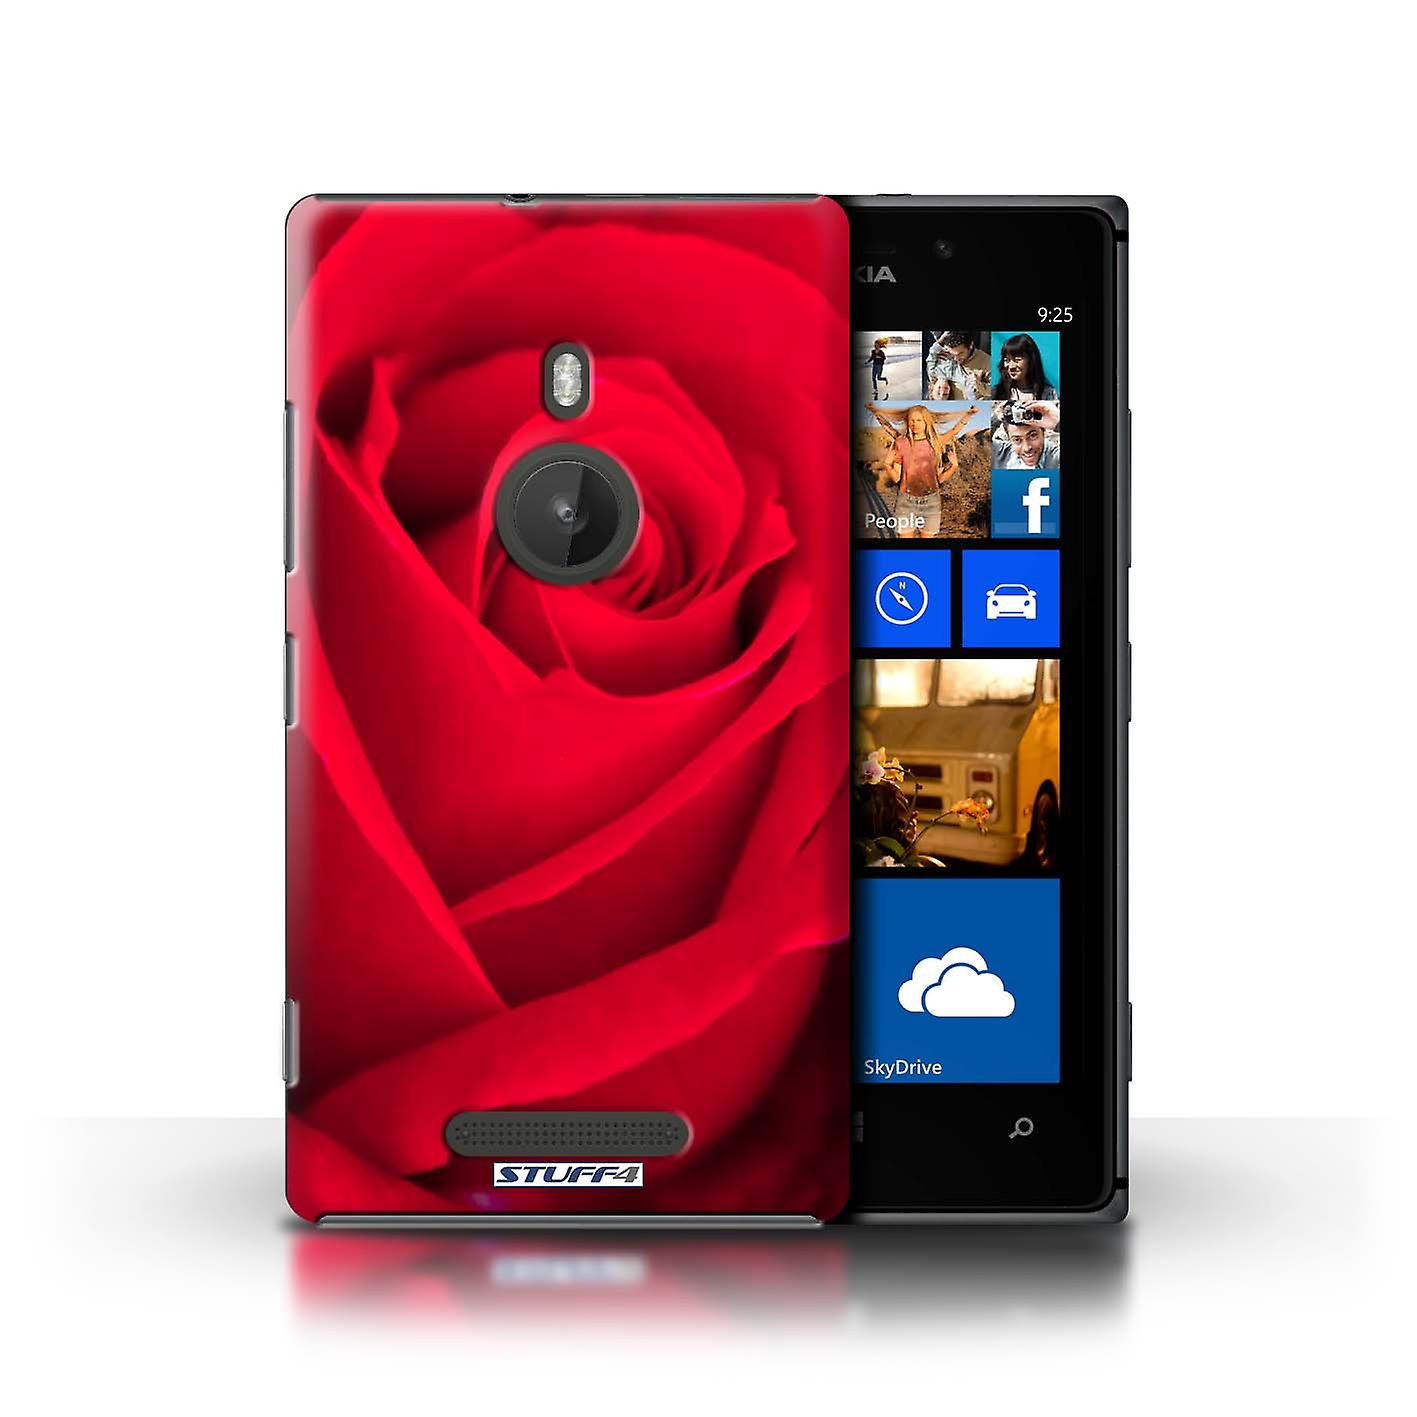 STUFF4 Case/Cover for Nokia Lumia 925/Red Rose/Floral Garden Flowers